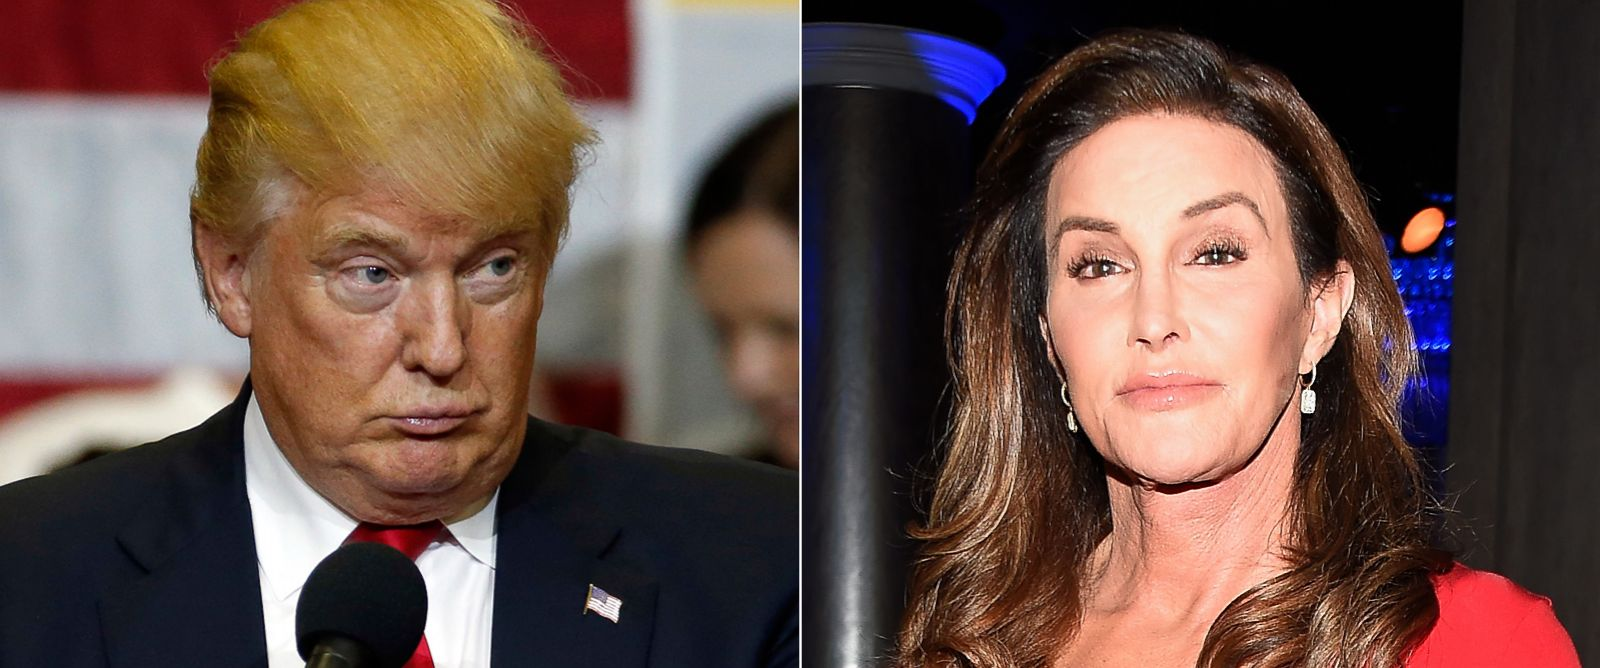 PHOTO: Donald Trump speaks during a campaign event at Stephen Decatur High School, April 20, 2016, in Berlin, Md. | Caitlyn Jenner attends the 27th Annual GLAAD Media Awards, April 2, 2016, in Beverly Hills, California.